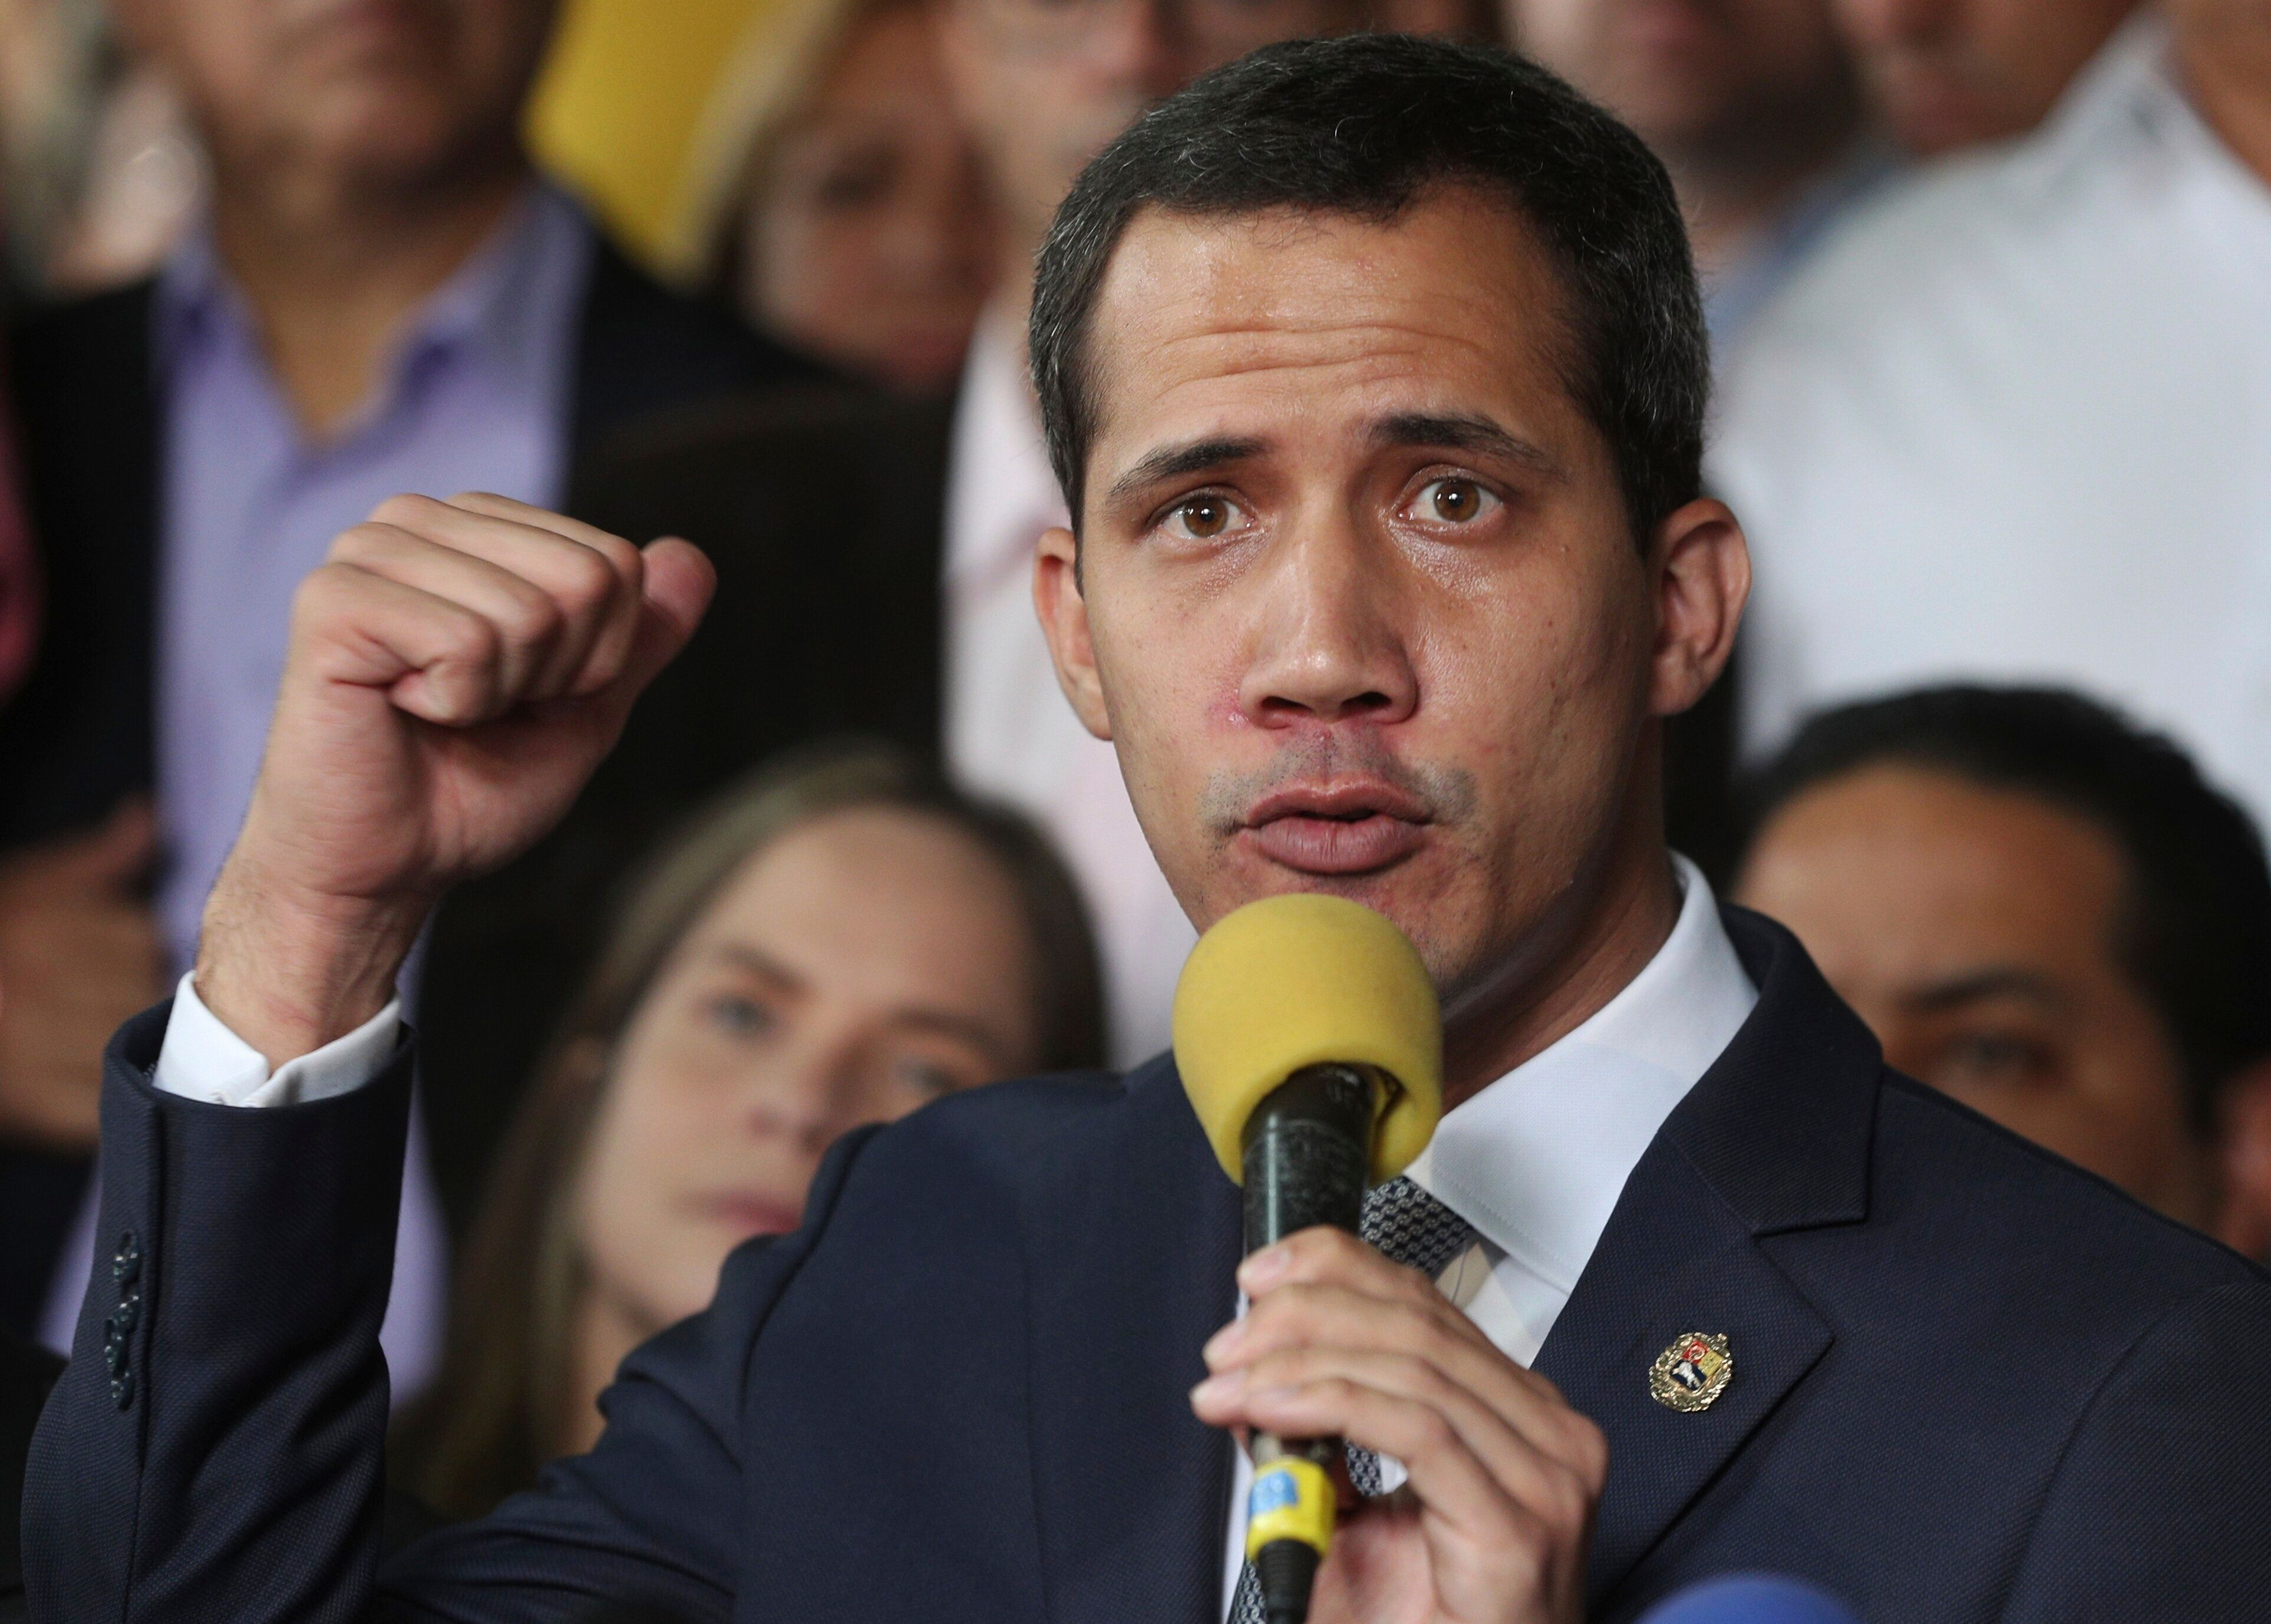 Opposition leader Juan Guaidó speaks during a press conference in Caracas, Venezuela, Friday, May 3, 2019. In the fourth month of their standoff, President Nicolás Maduro and Guaidó are unable to deliver a knock-out blow as Venezuela spirals deeper into neglect, isolation and desperation.  (AP Photo/Martin Mejia)